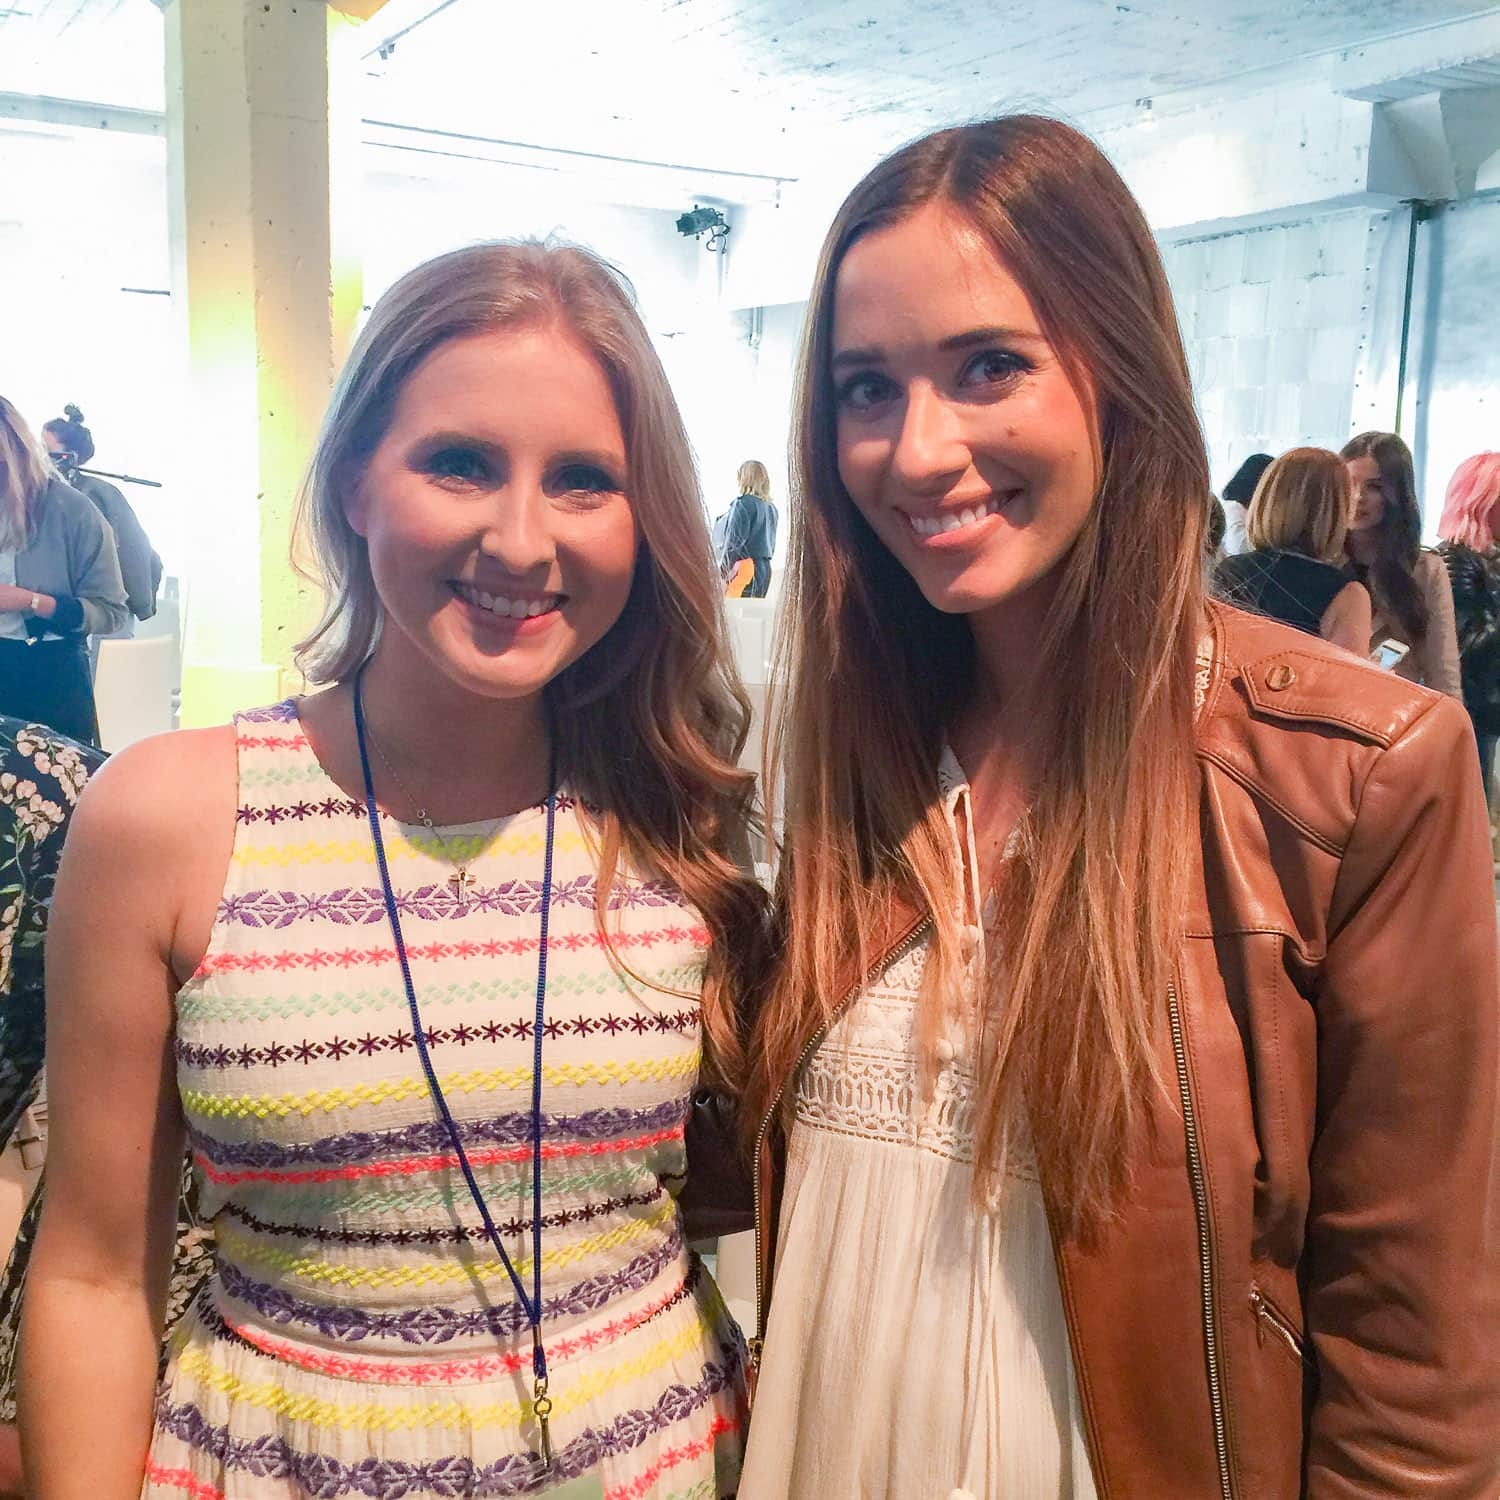 Fashion bloggers Ashley Brooke Nicholas and M Loves M | Create + Cultivate Los Angeles 2016 Conference Recap + Review | Beauty and Style Blogger Ashley Brooke Nicholas